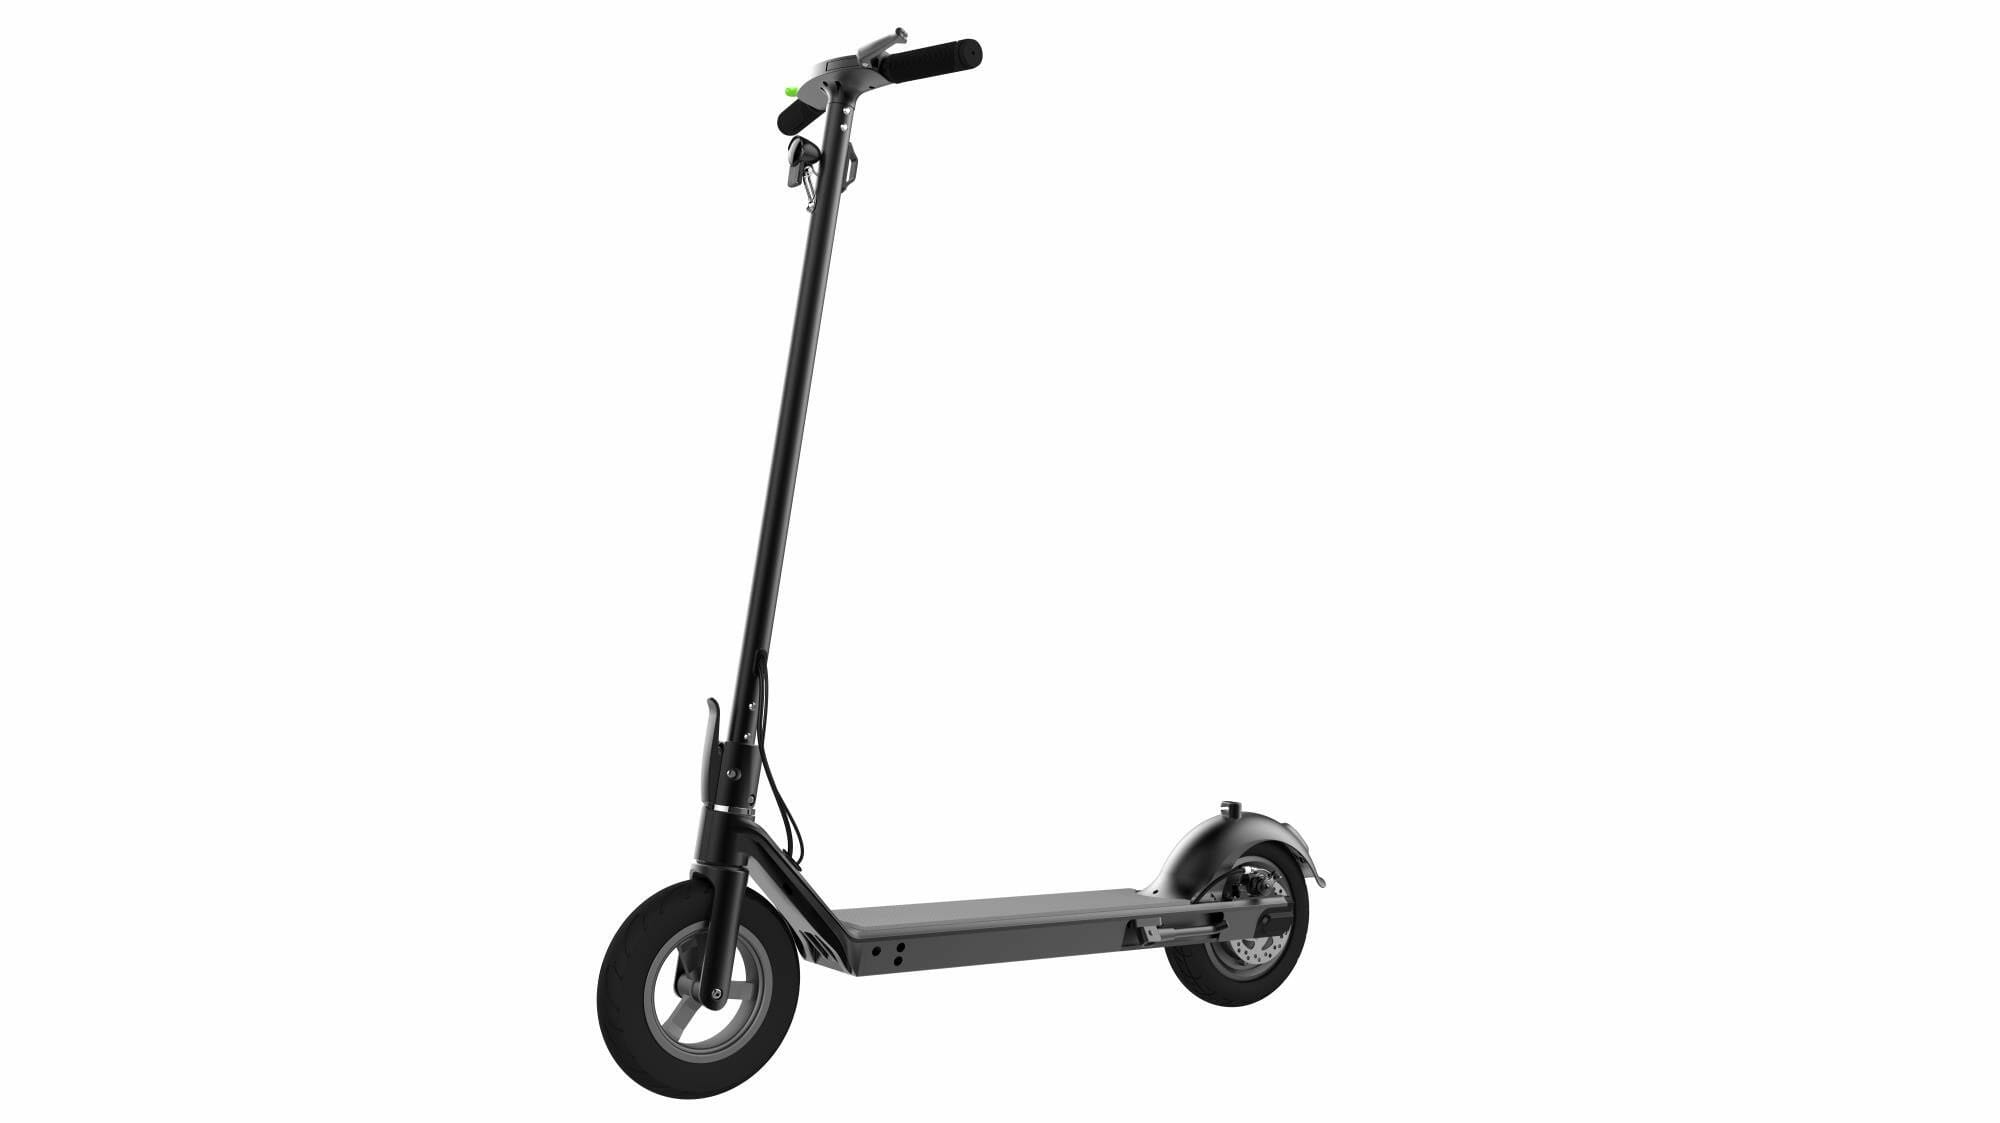 ERIDES RND E-scooter with hand control